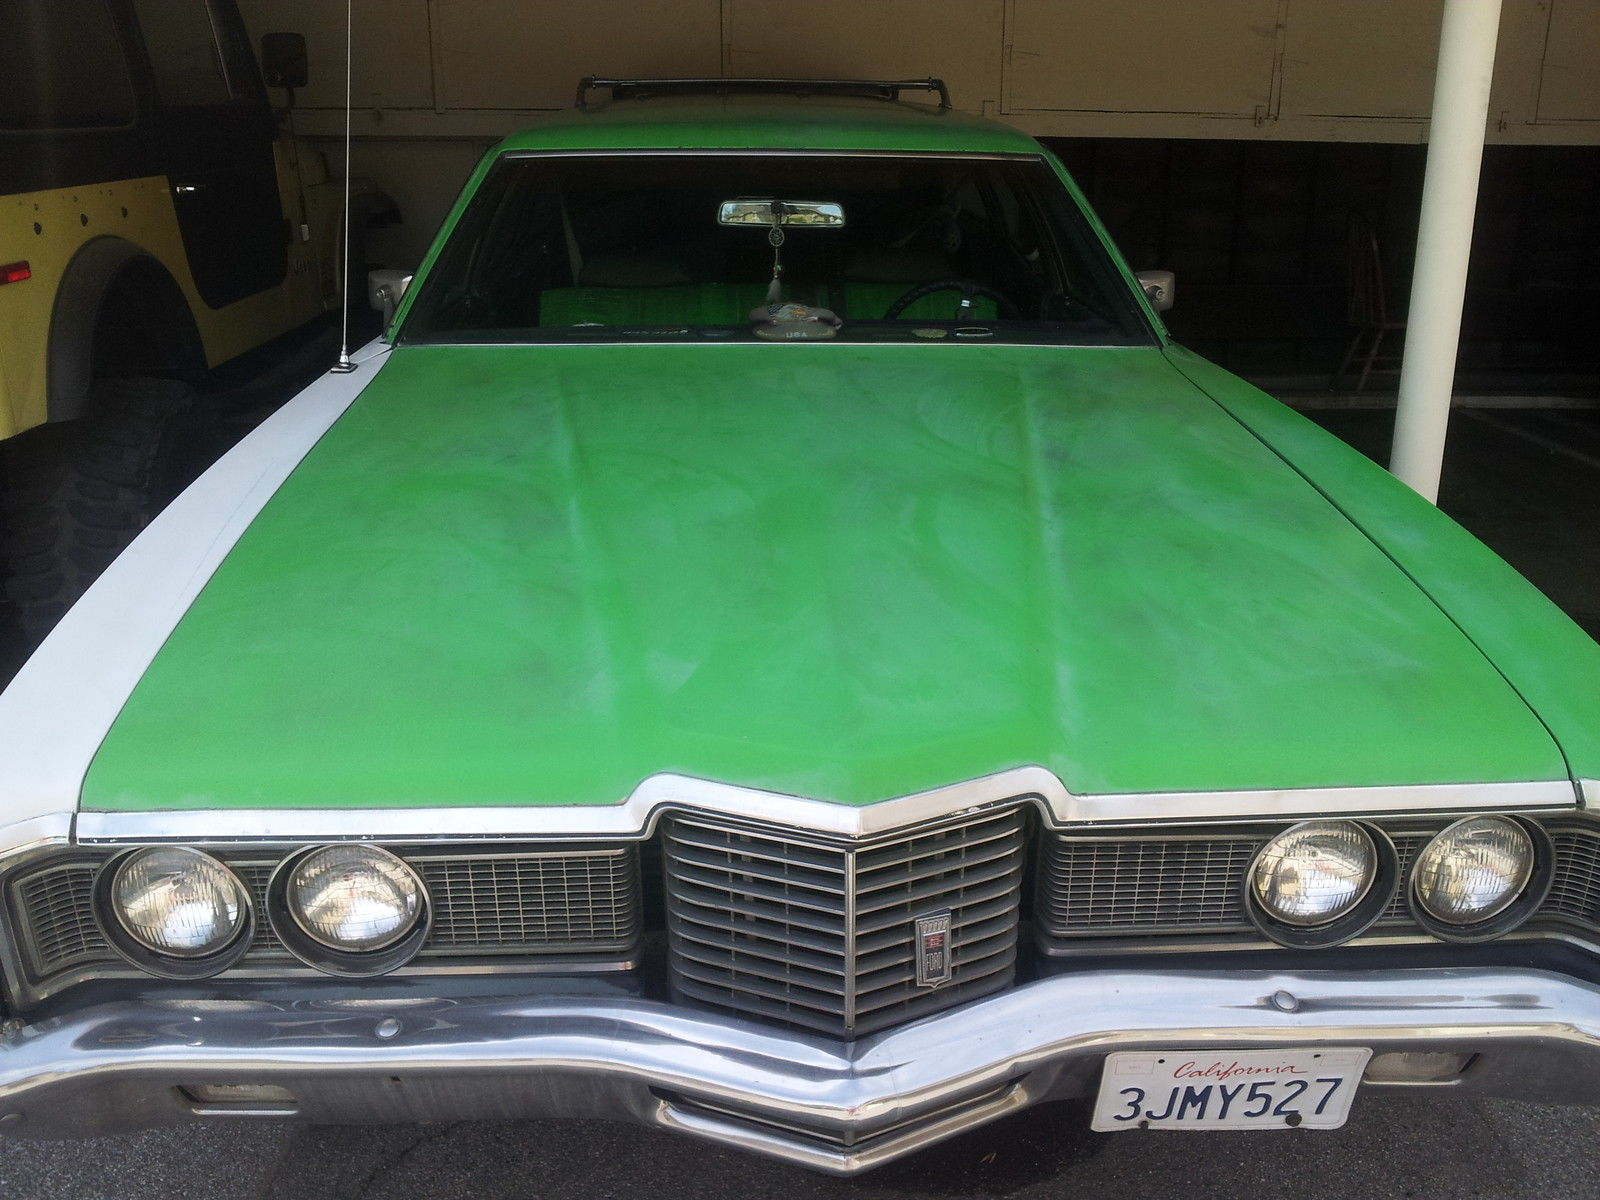 Nada Classic Car Values >> 1972 CLASSIC FORD LTD COUNTRY SQUIRE STATION WAGON - Classic Ford 1972 for sale